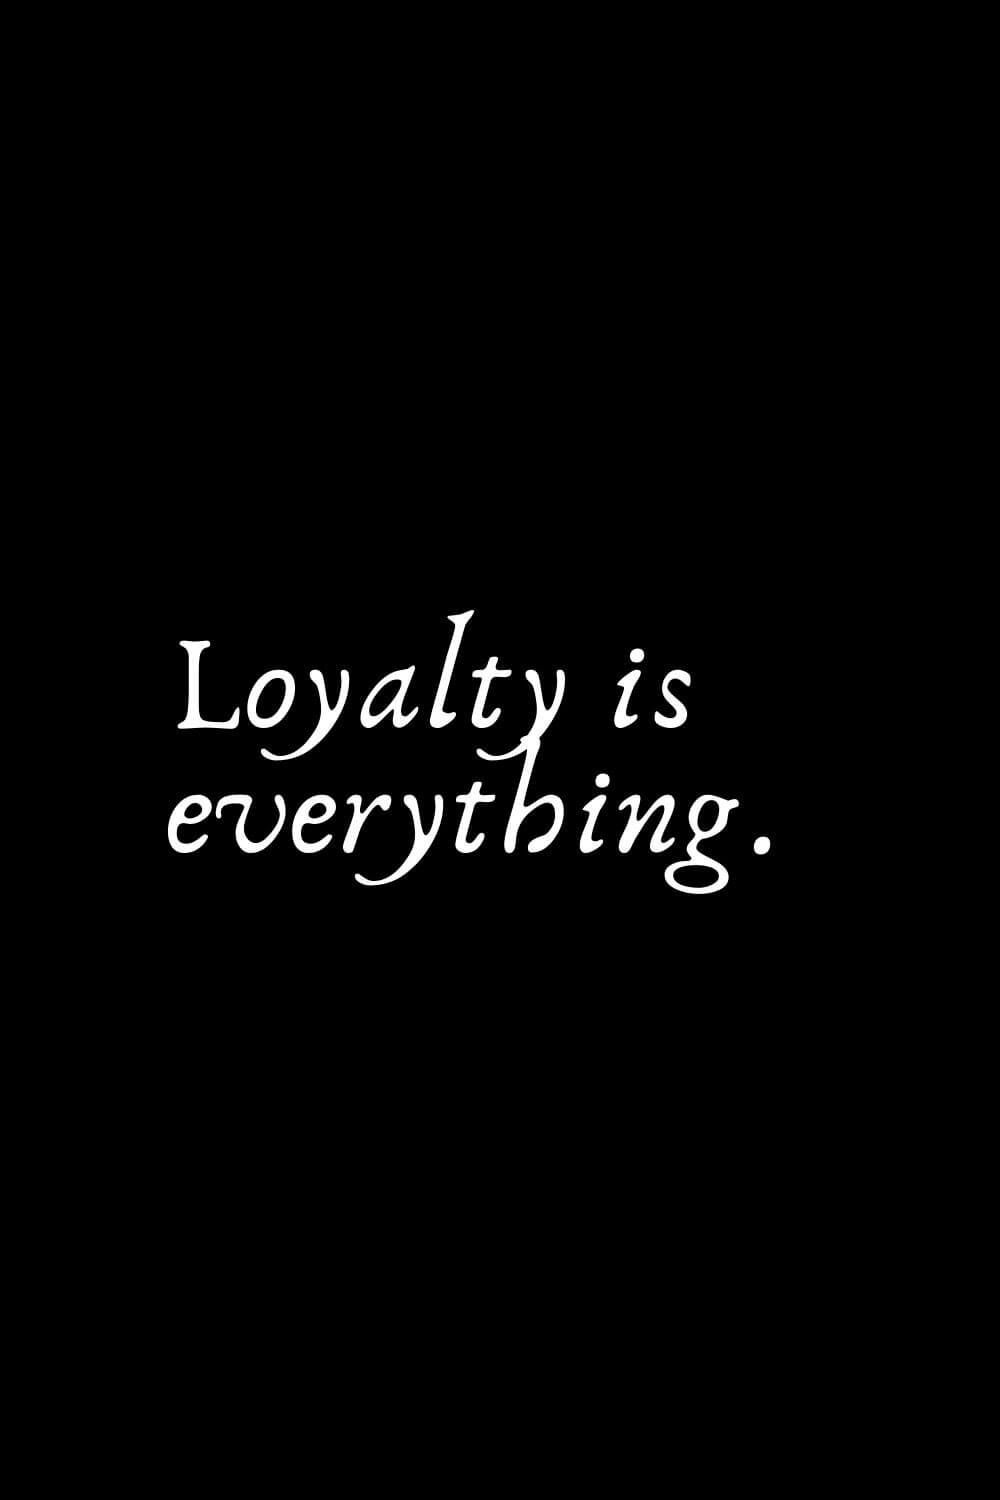 134 List Of Romantic Words For Her And Him Loyalty Quotes Romantic Words For Her Romantic Words